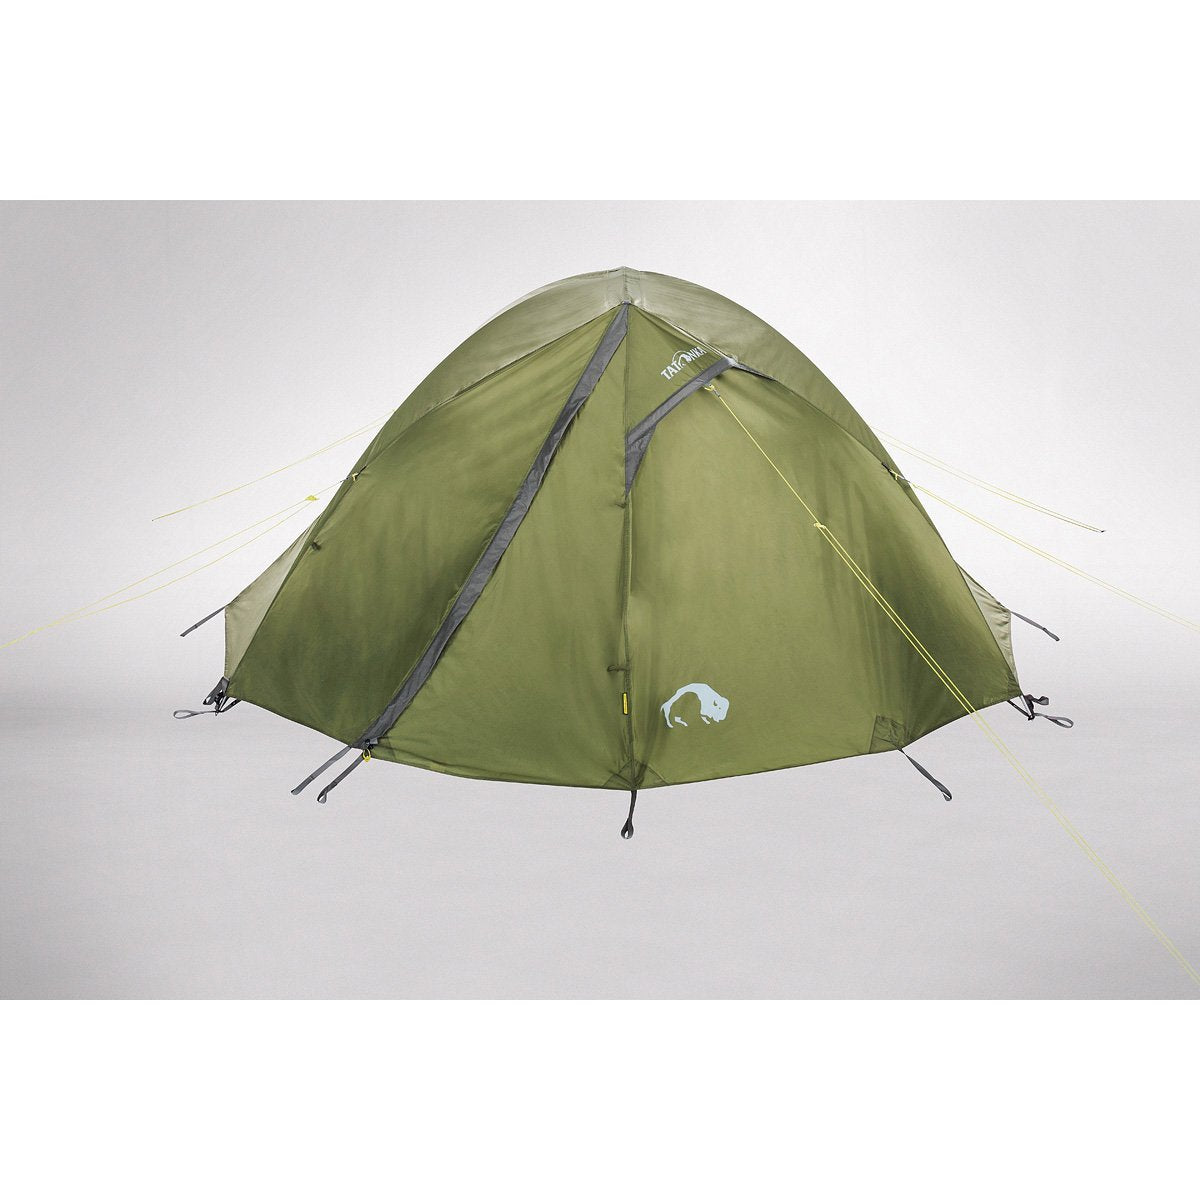 Tatonka Mountain Dome II Light Olive 2 Persons Tent Tactical Gear Australia Supplier Distributor Dealer